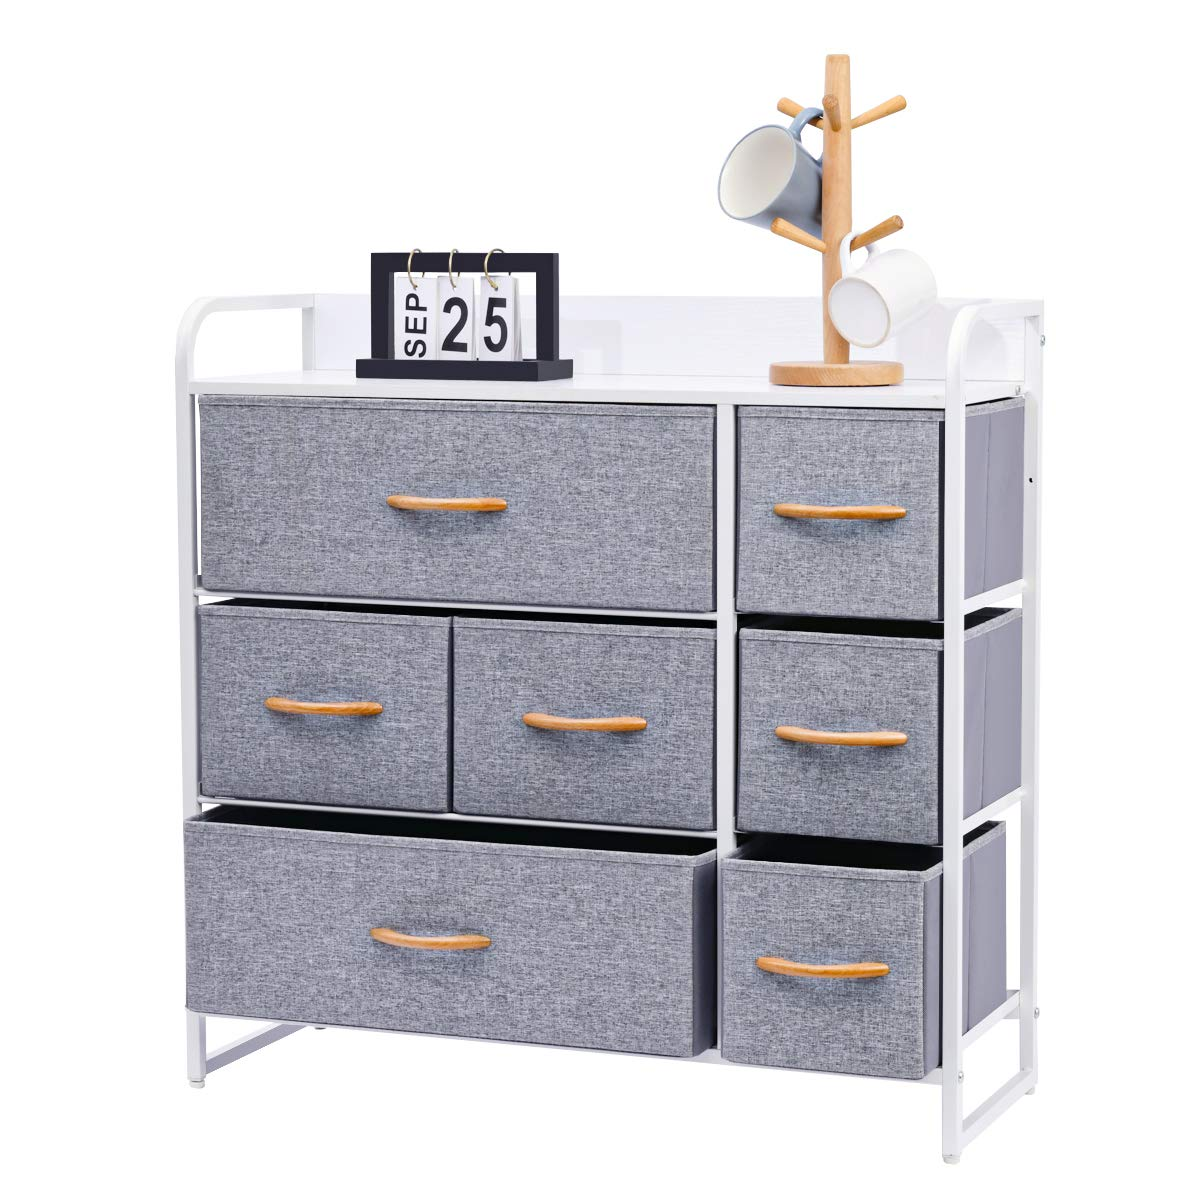 Kamiler 7-Drawer Dresser, 3-Tier Storage Organizer, Tower Unit for Bedroom, Hallway, Entryway, Closets - Sturdy Steel Frame, Wooden Top, Removable Fabric Bins by Kamiler